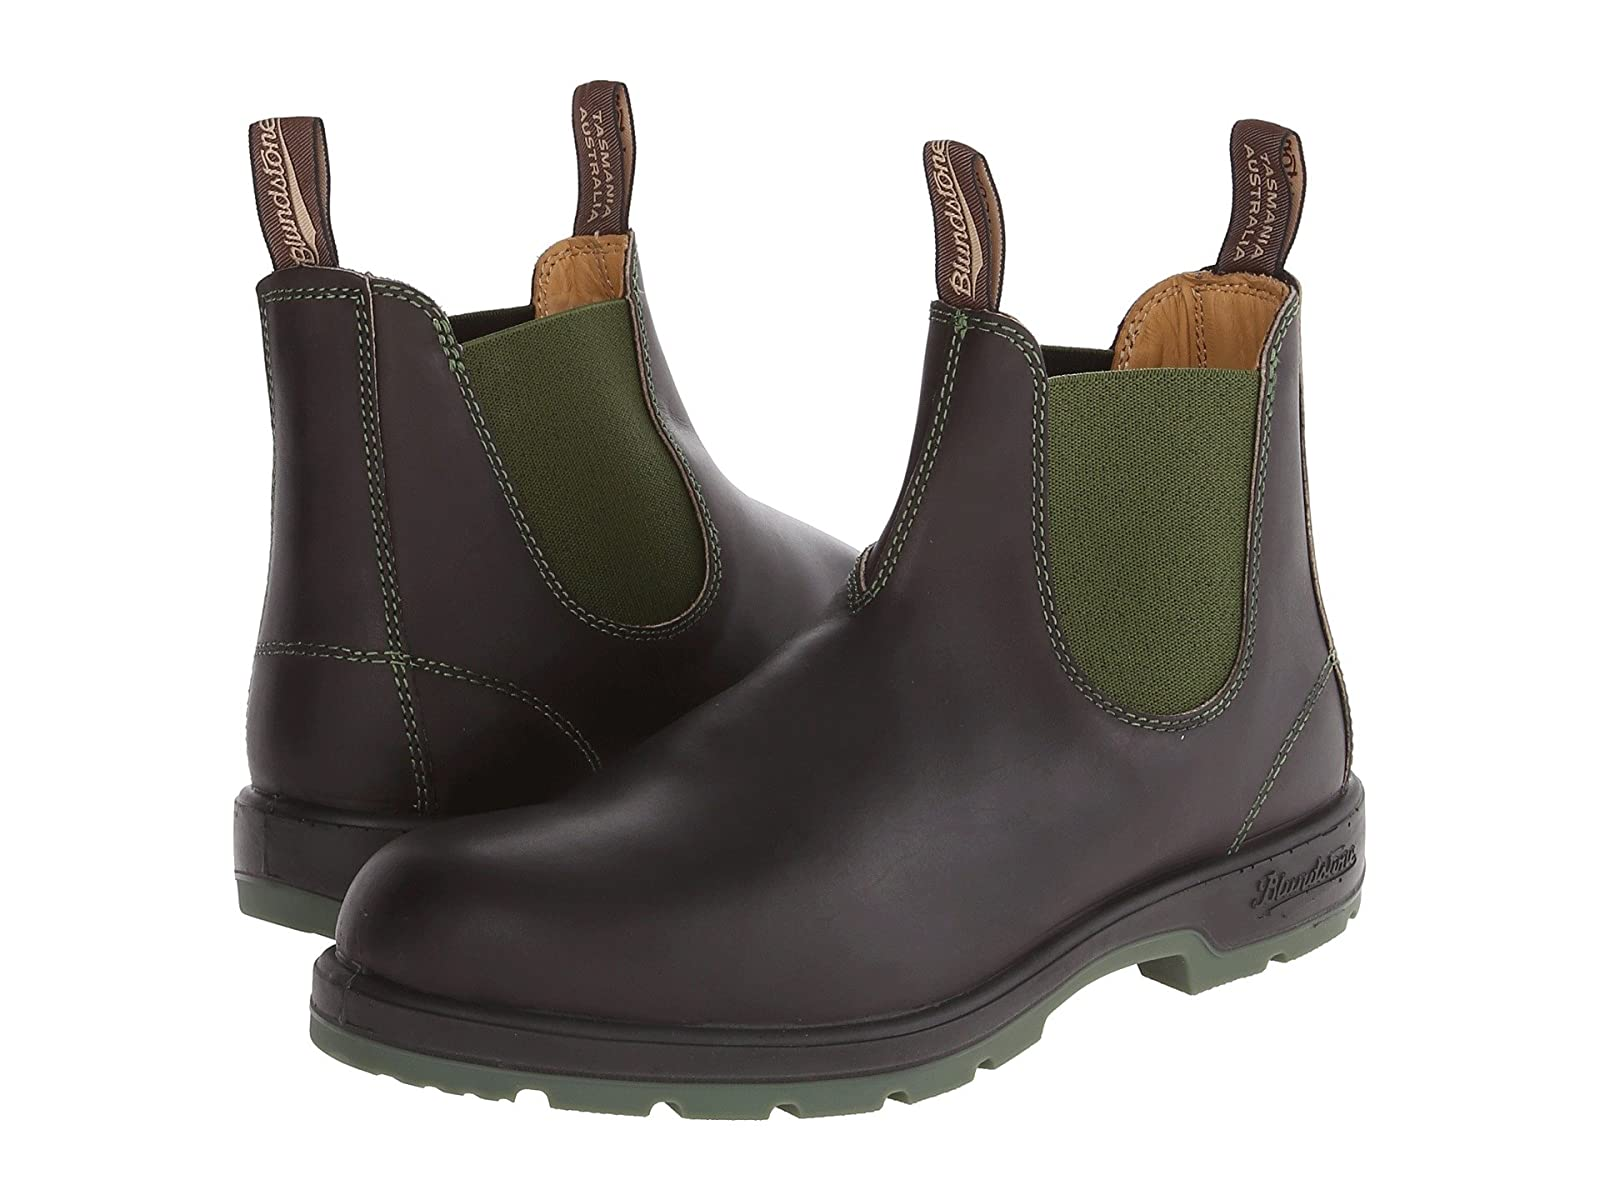 Blundstone 1402Selling fashionable and eye-catching shoes